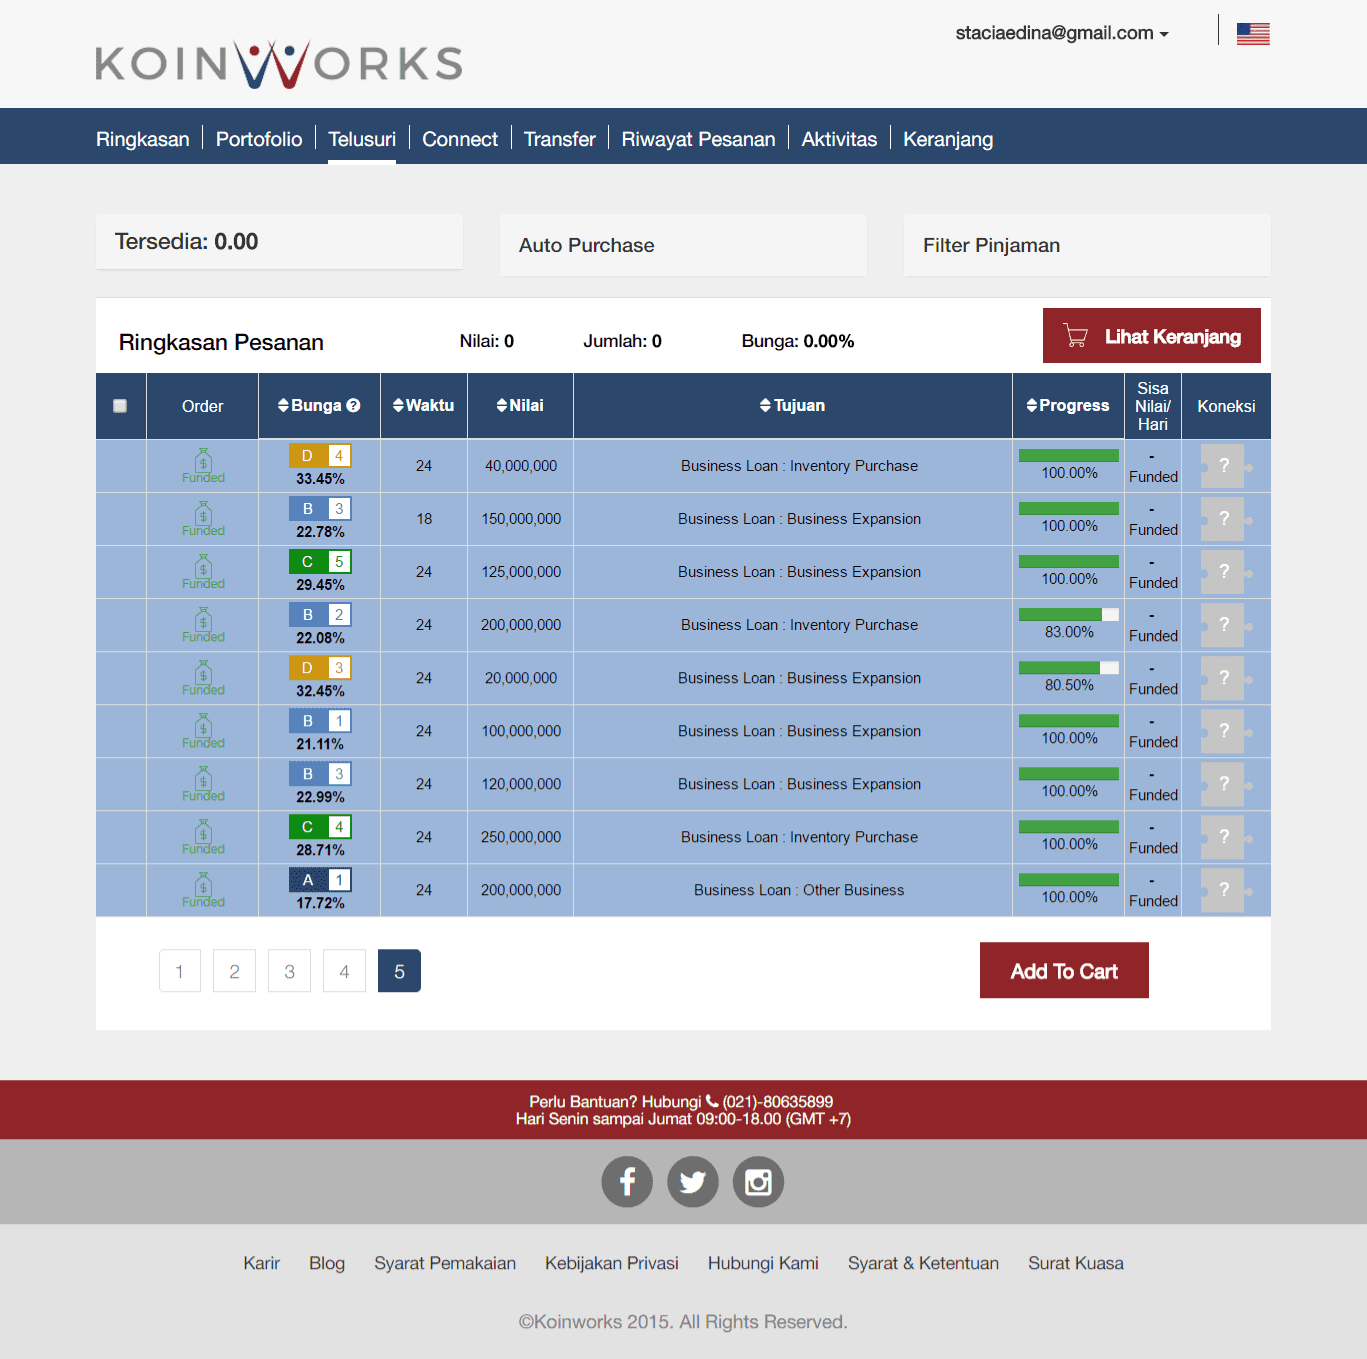 fireshot-capture-1-koinworks-i-the-connection-that-works_-https___koinworks-com_lender_loans